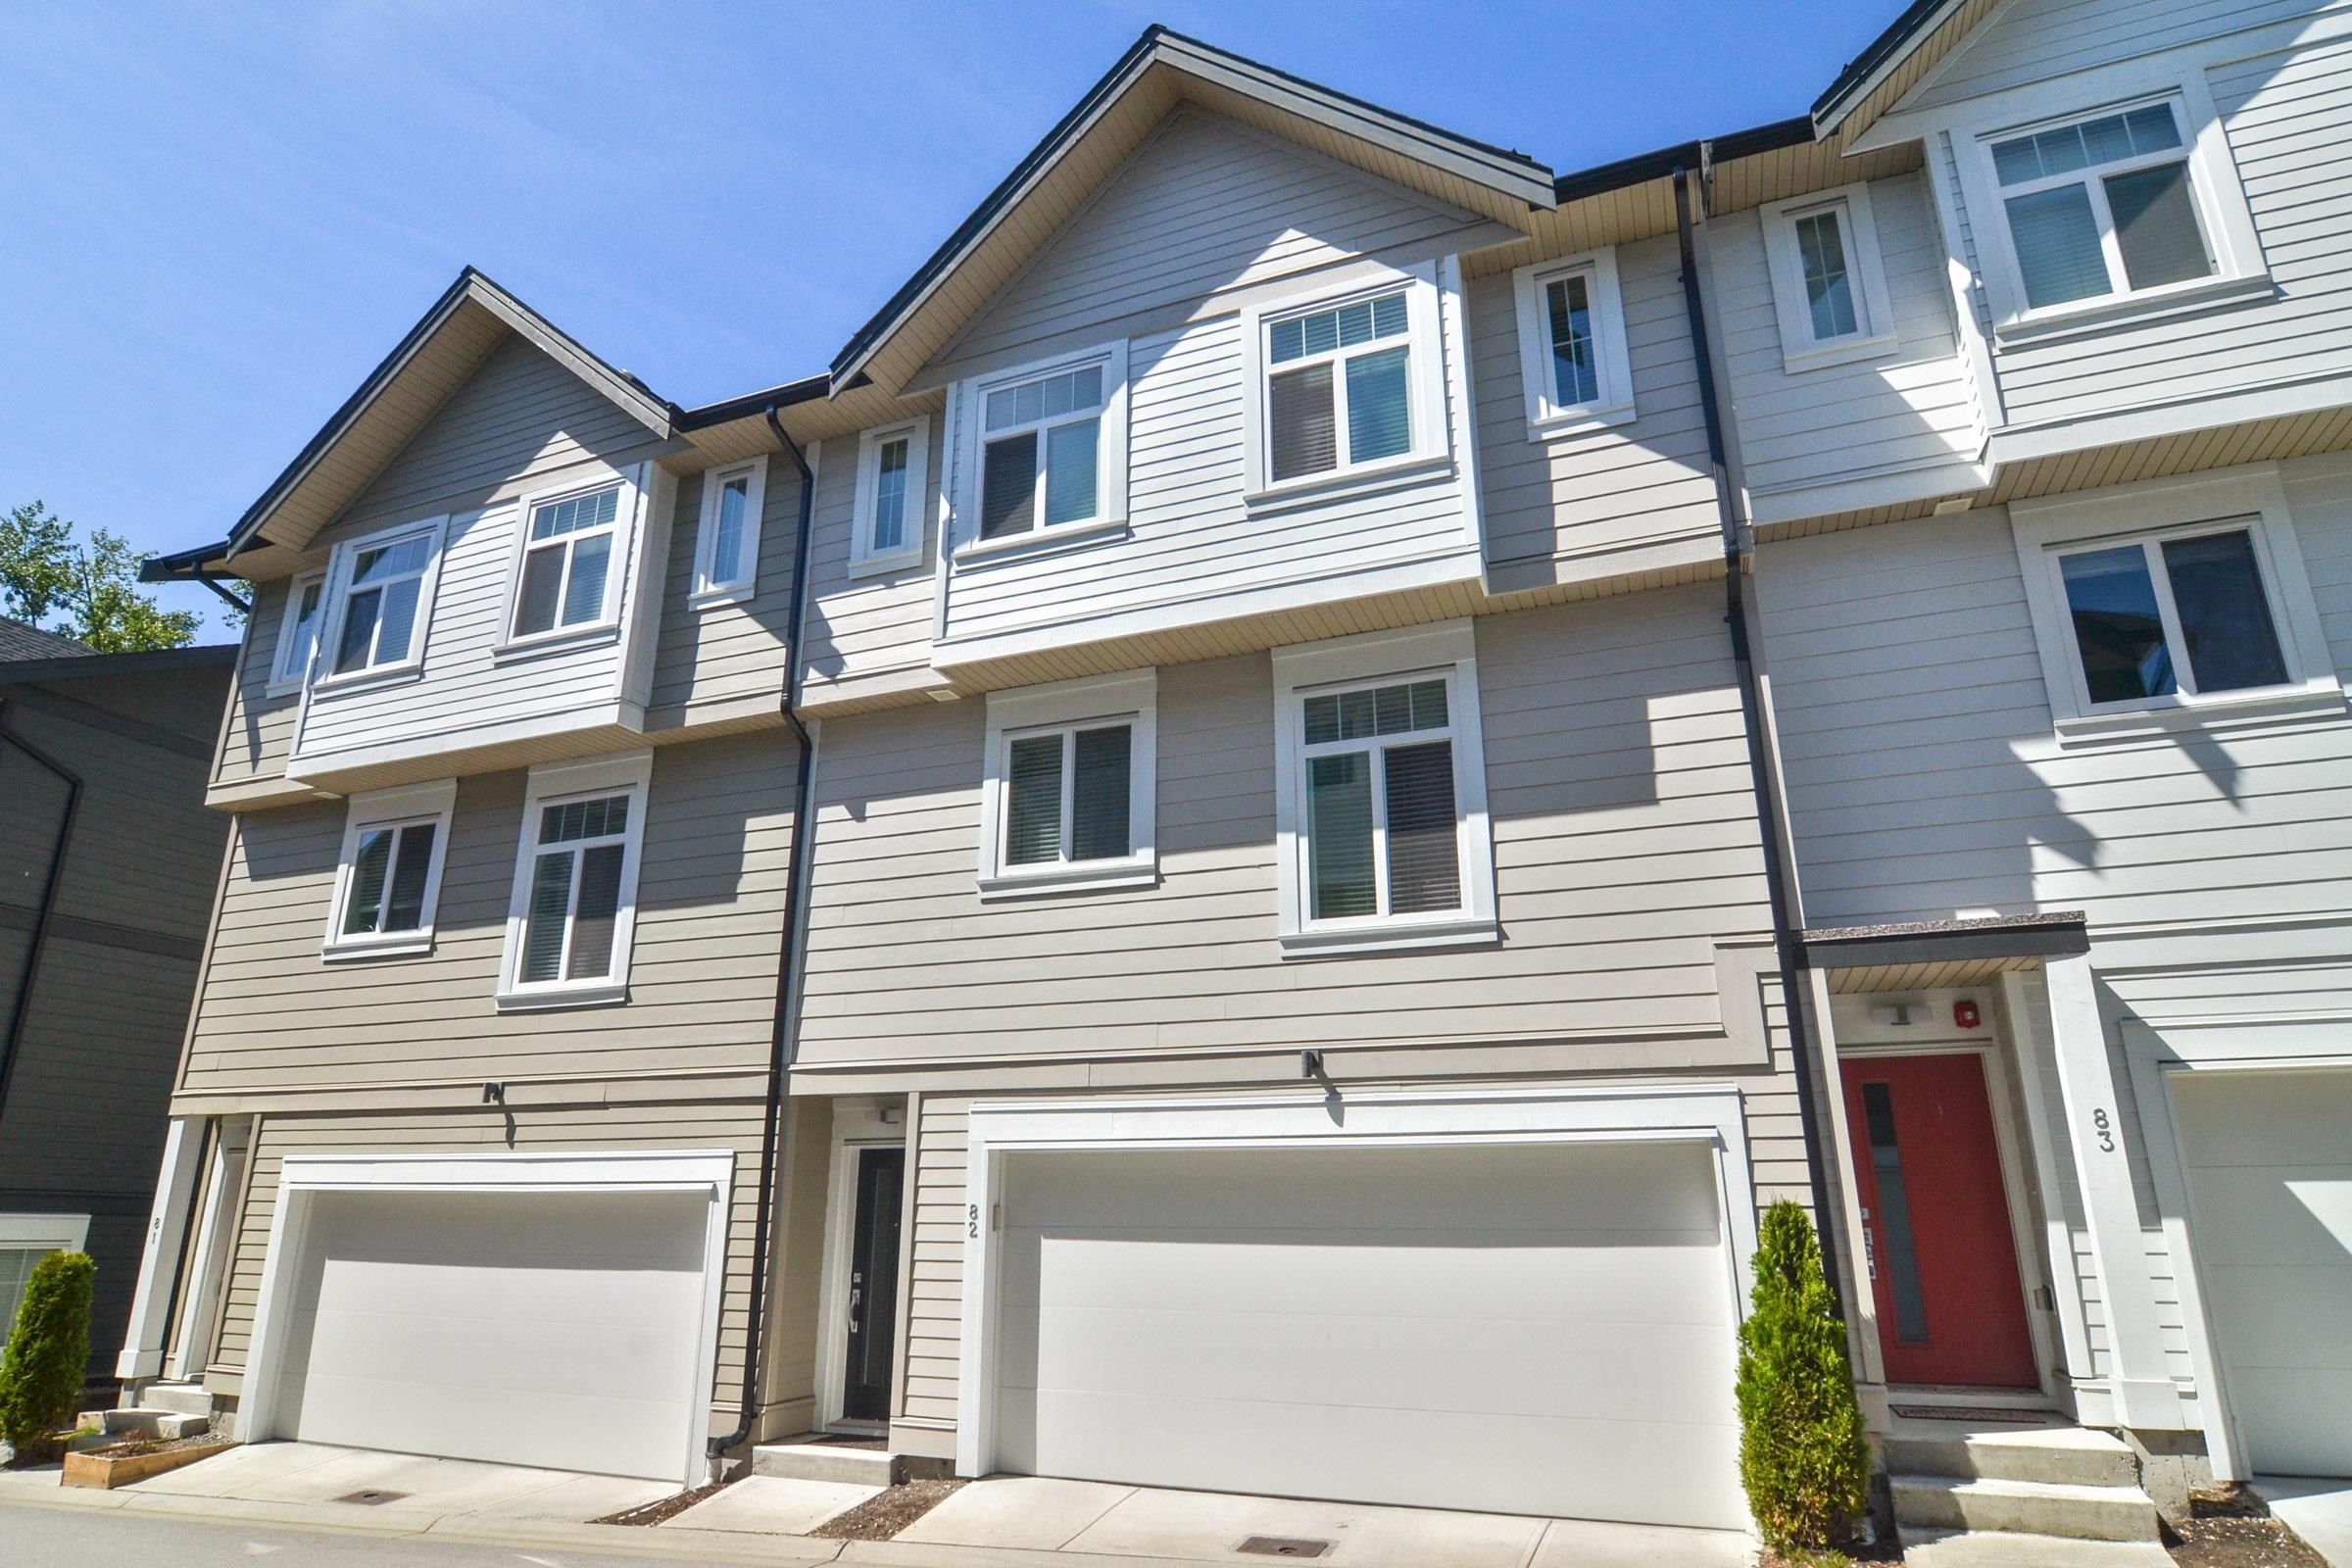 """Main Photo: 82 7665 209 Street in Langley: Willoughby Heights Townhouse for sale in """"ARCHSTONE"""" : MLS®# R2607778"""